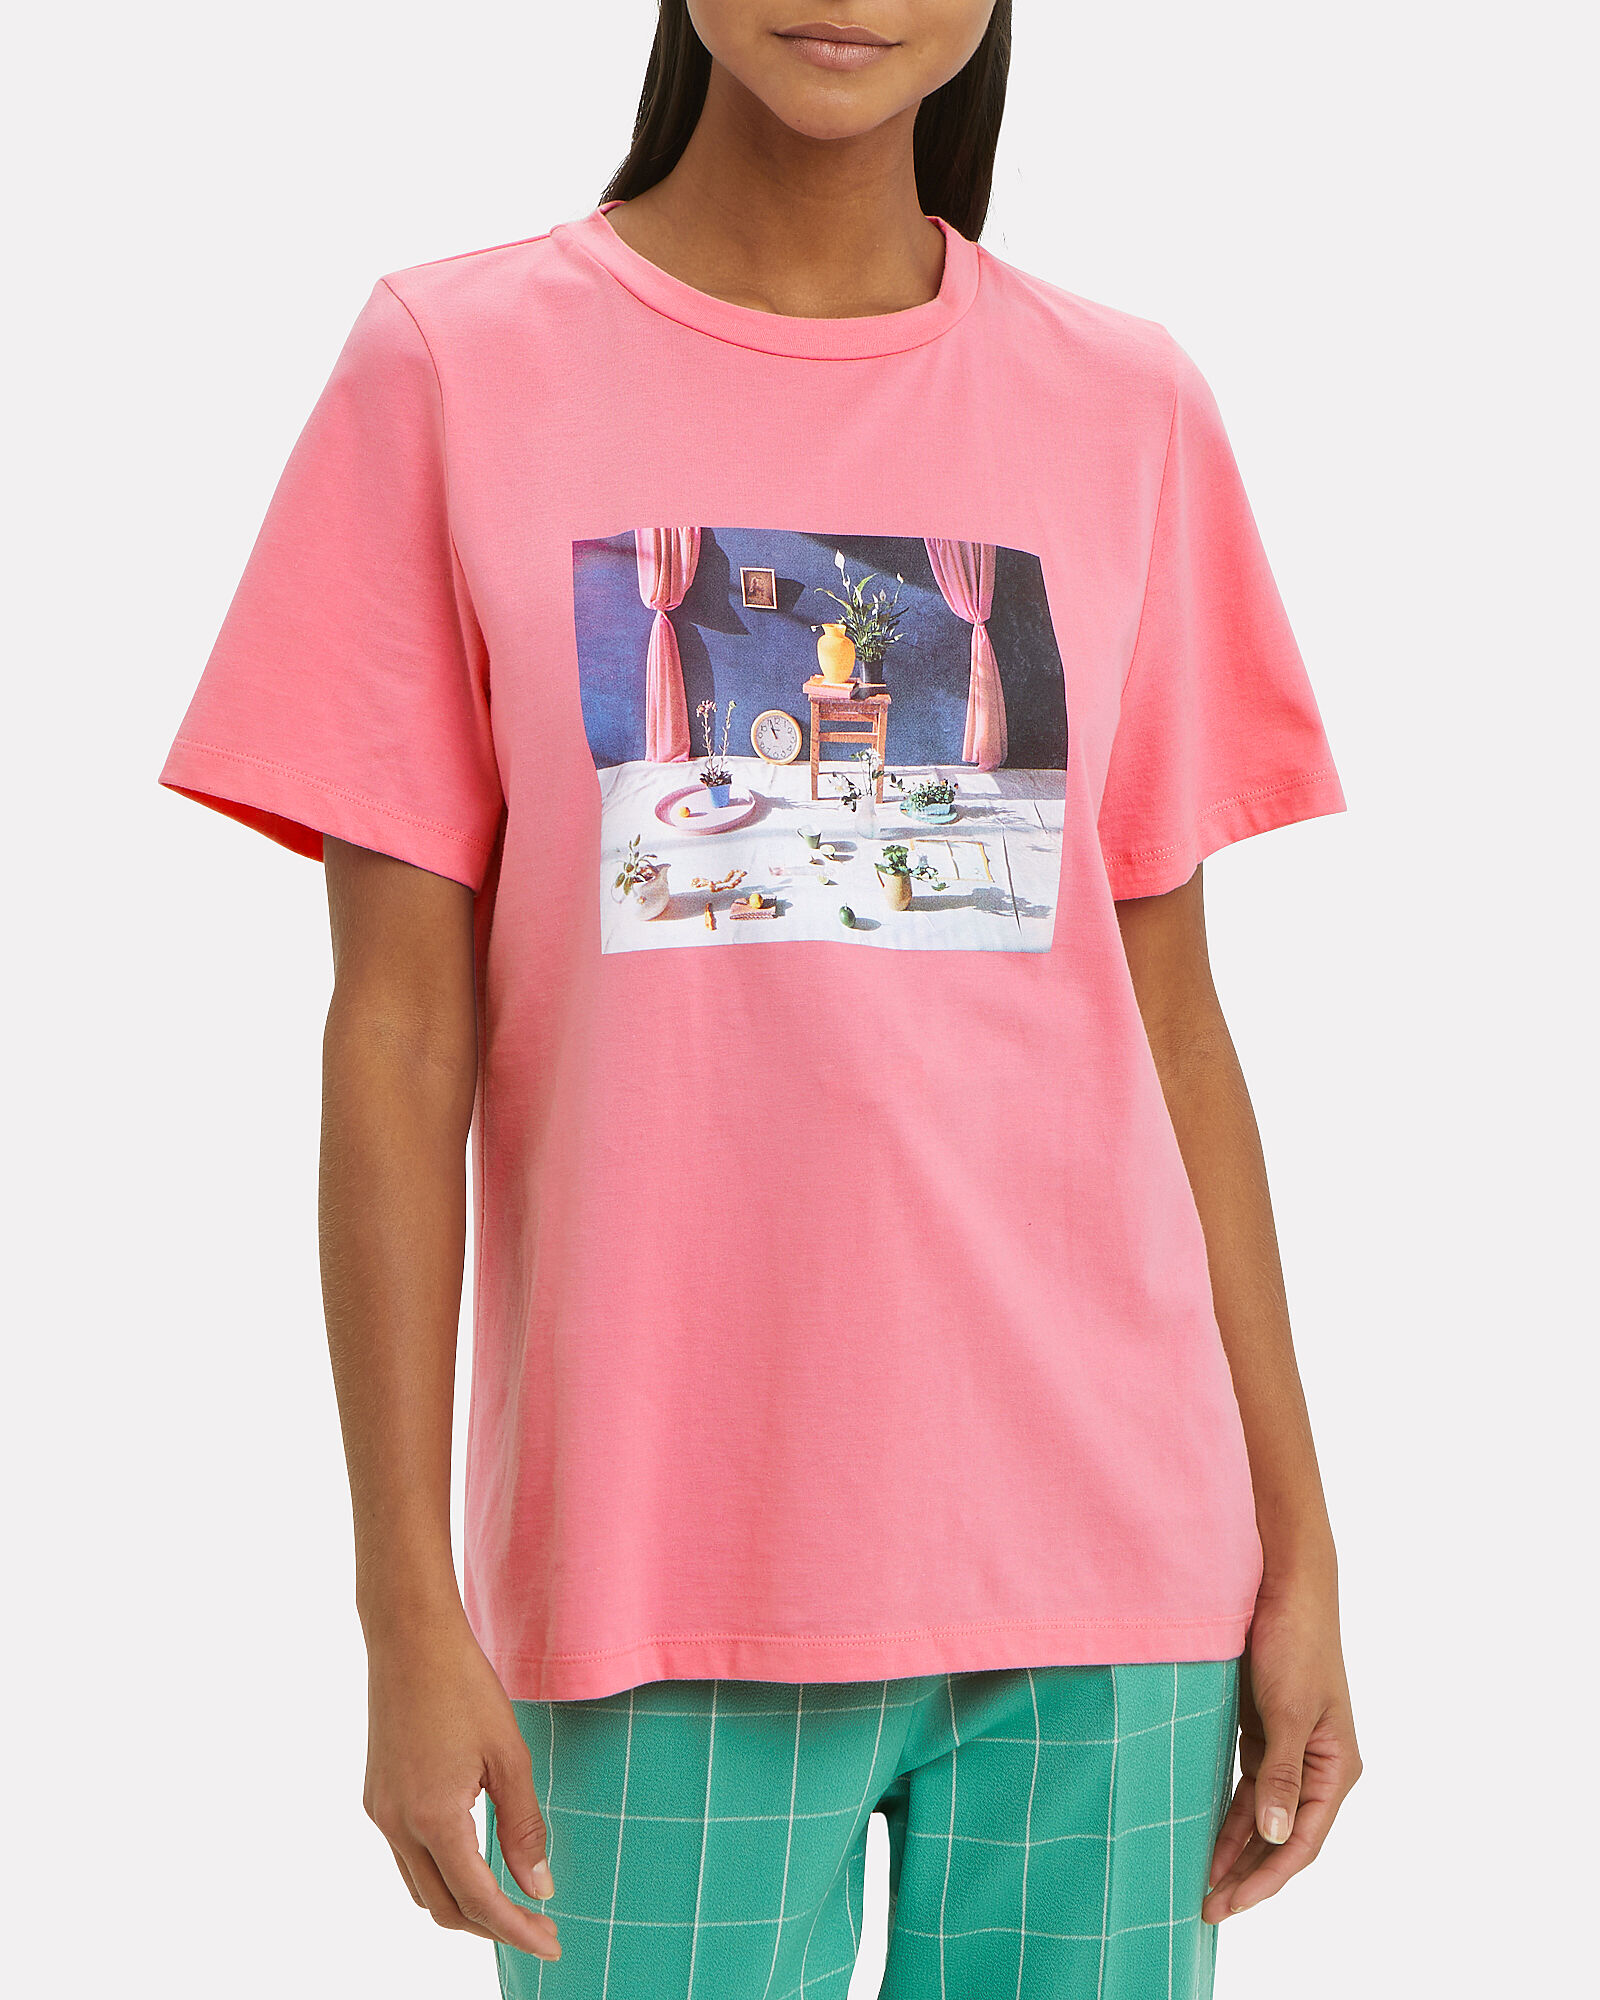 Billie T-Shirt, PINK, hi-res